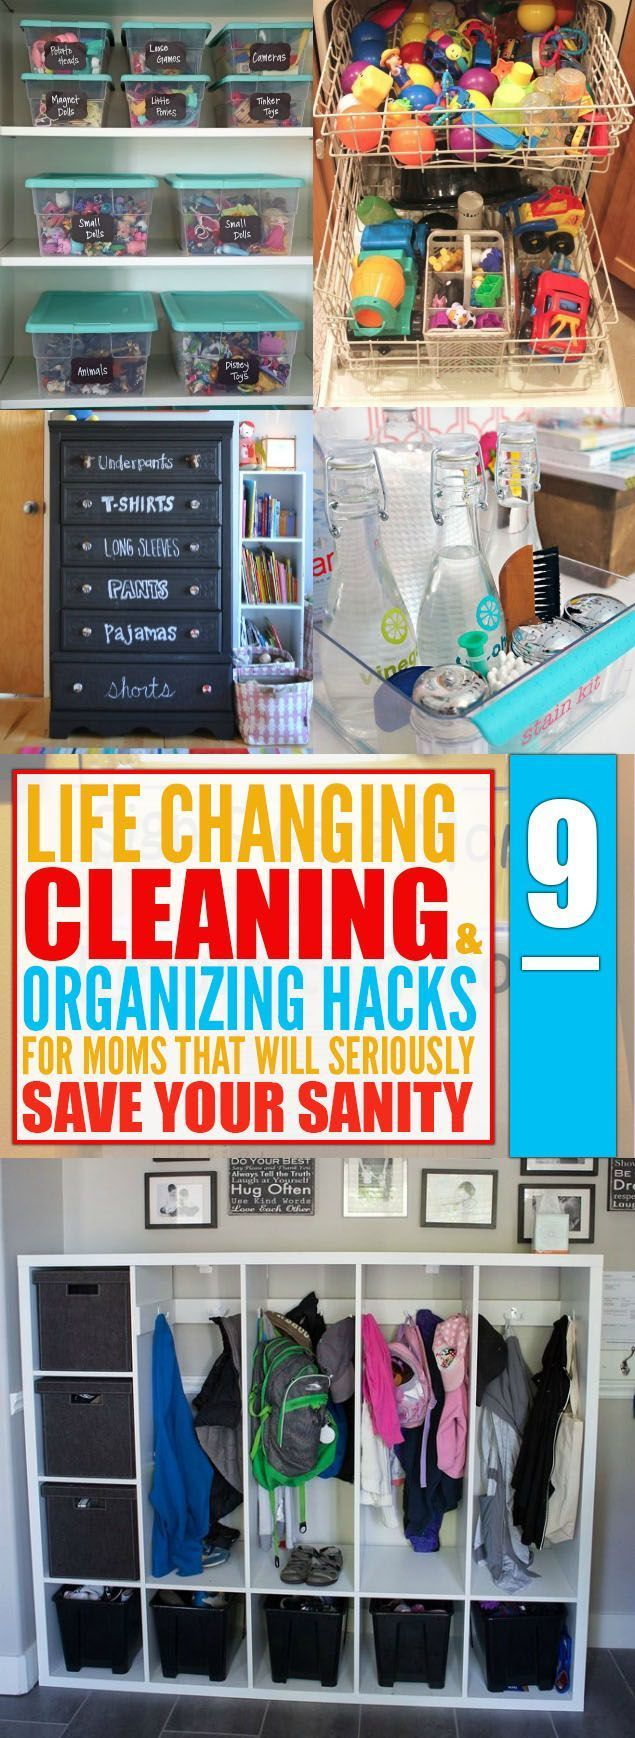 9 Cleaning  Organizing Hacks That Will Make Every Moms Life Easier 9 Cleaning  Organizing Hacks That Will Make Every Moms Life Easier